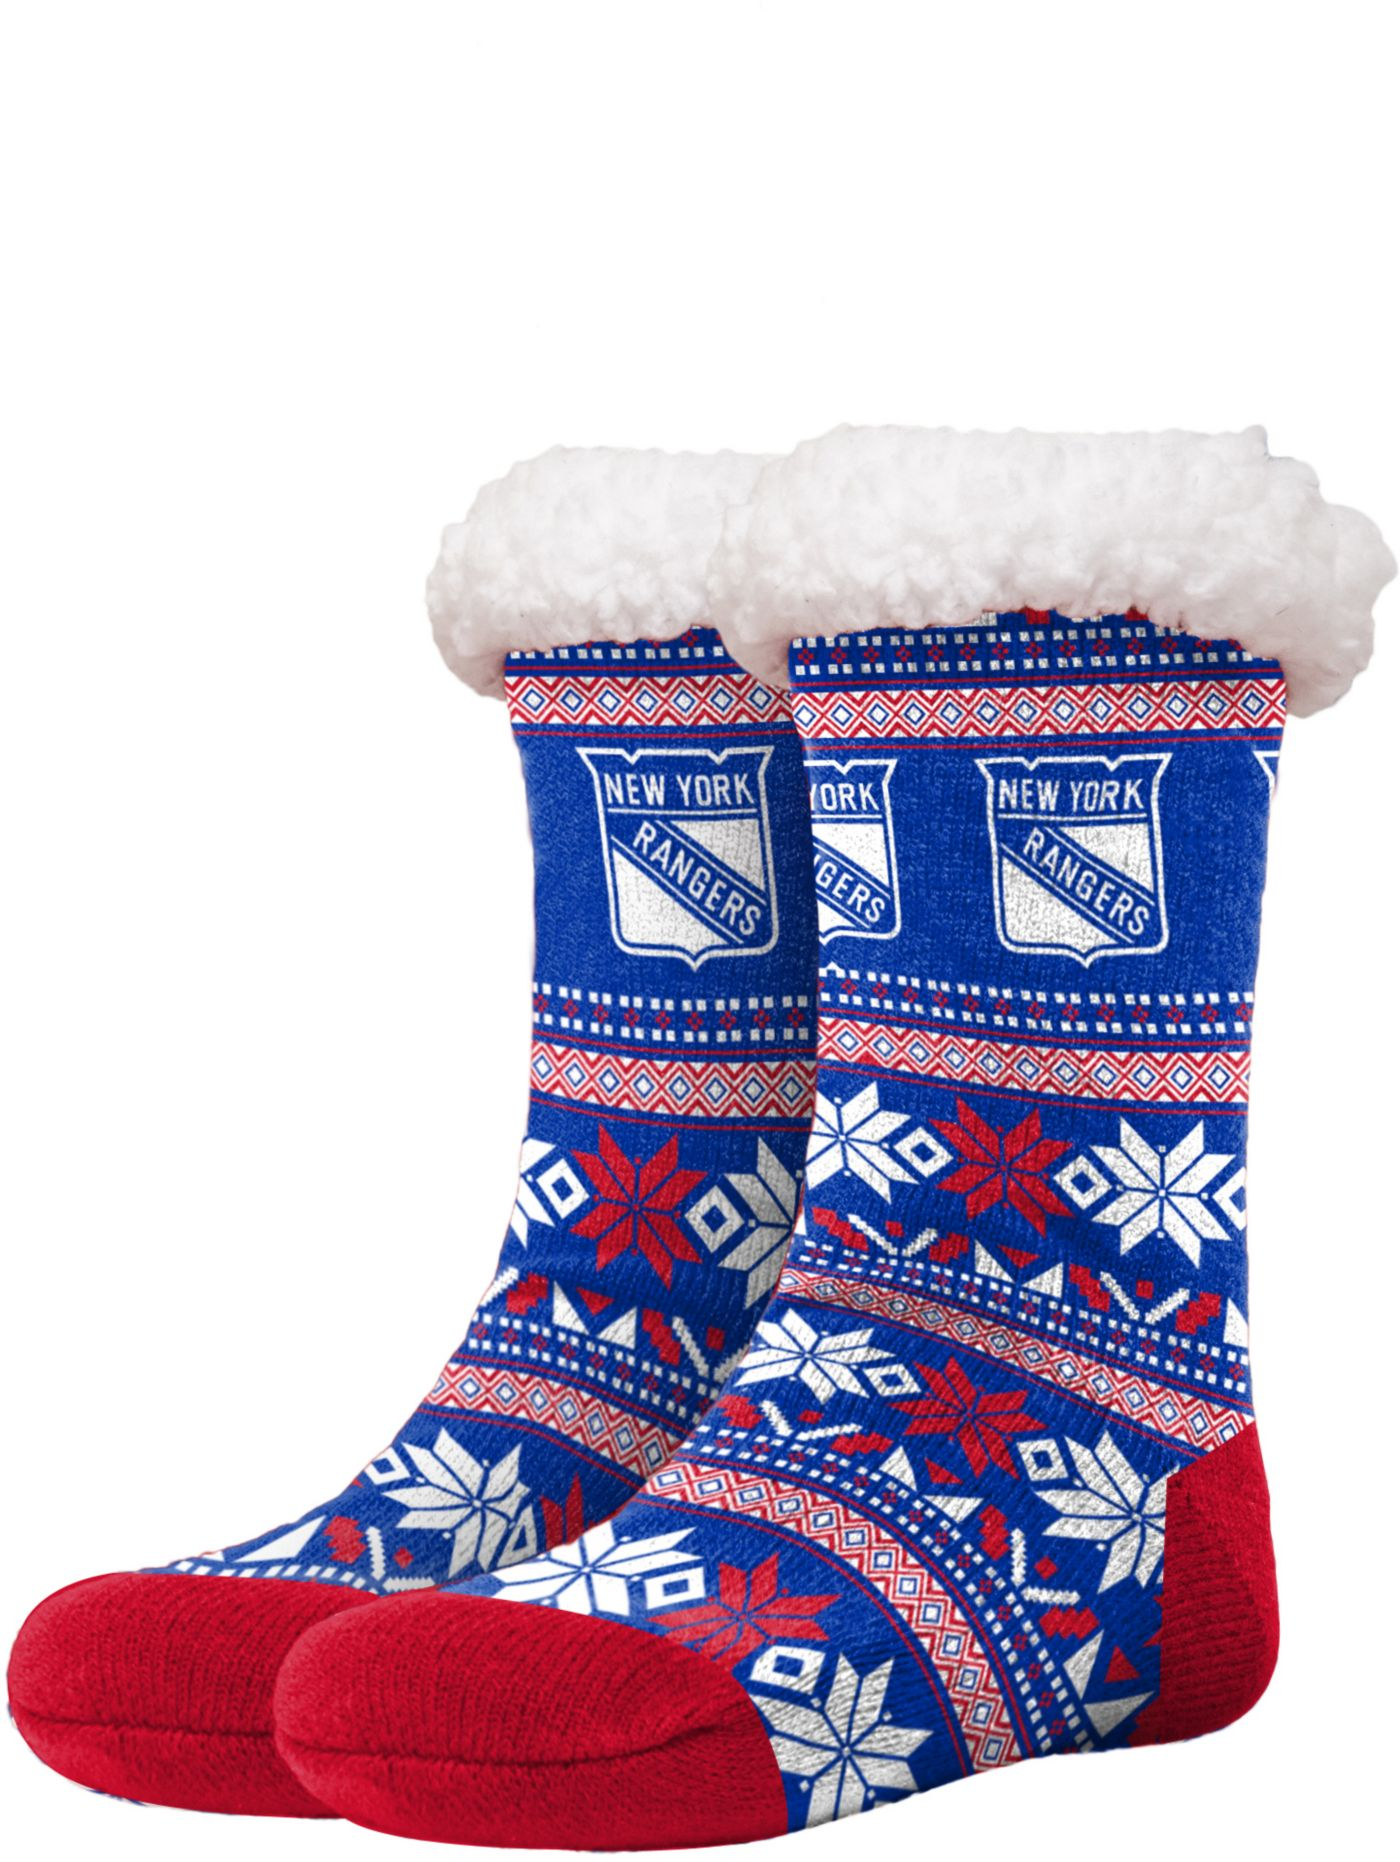 FOCO New York Rangers Footy Slippers